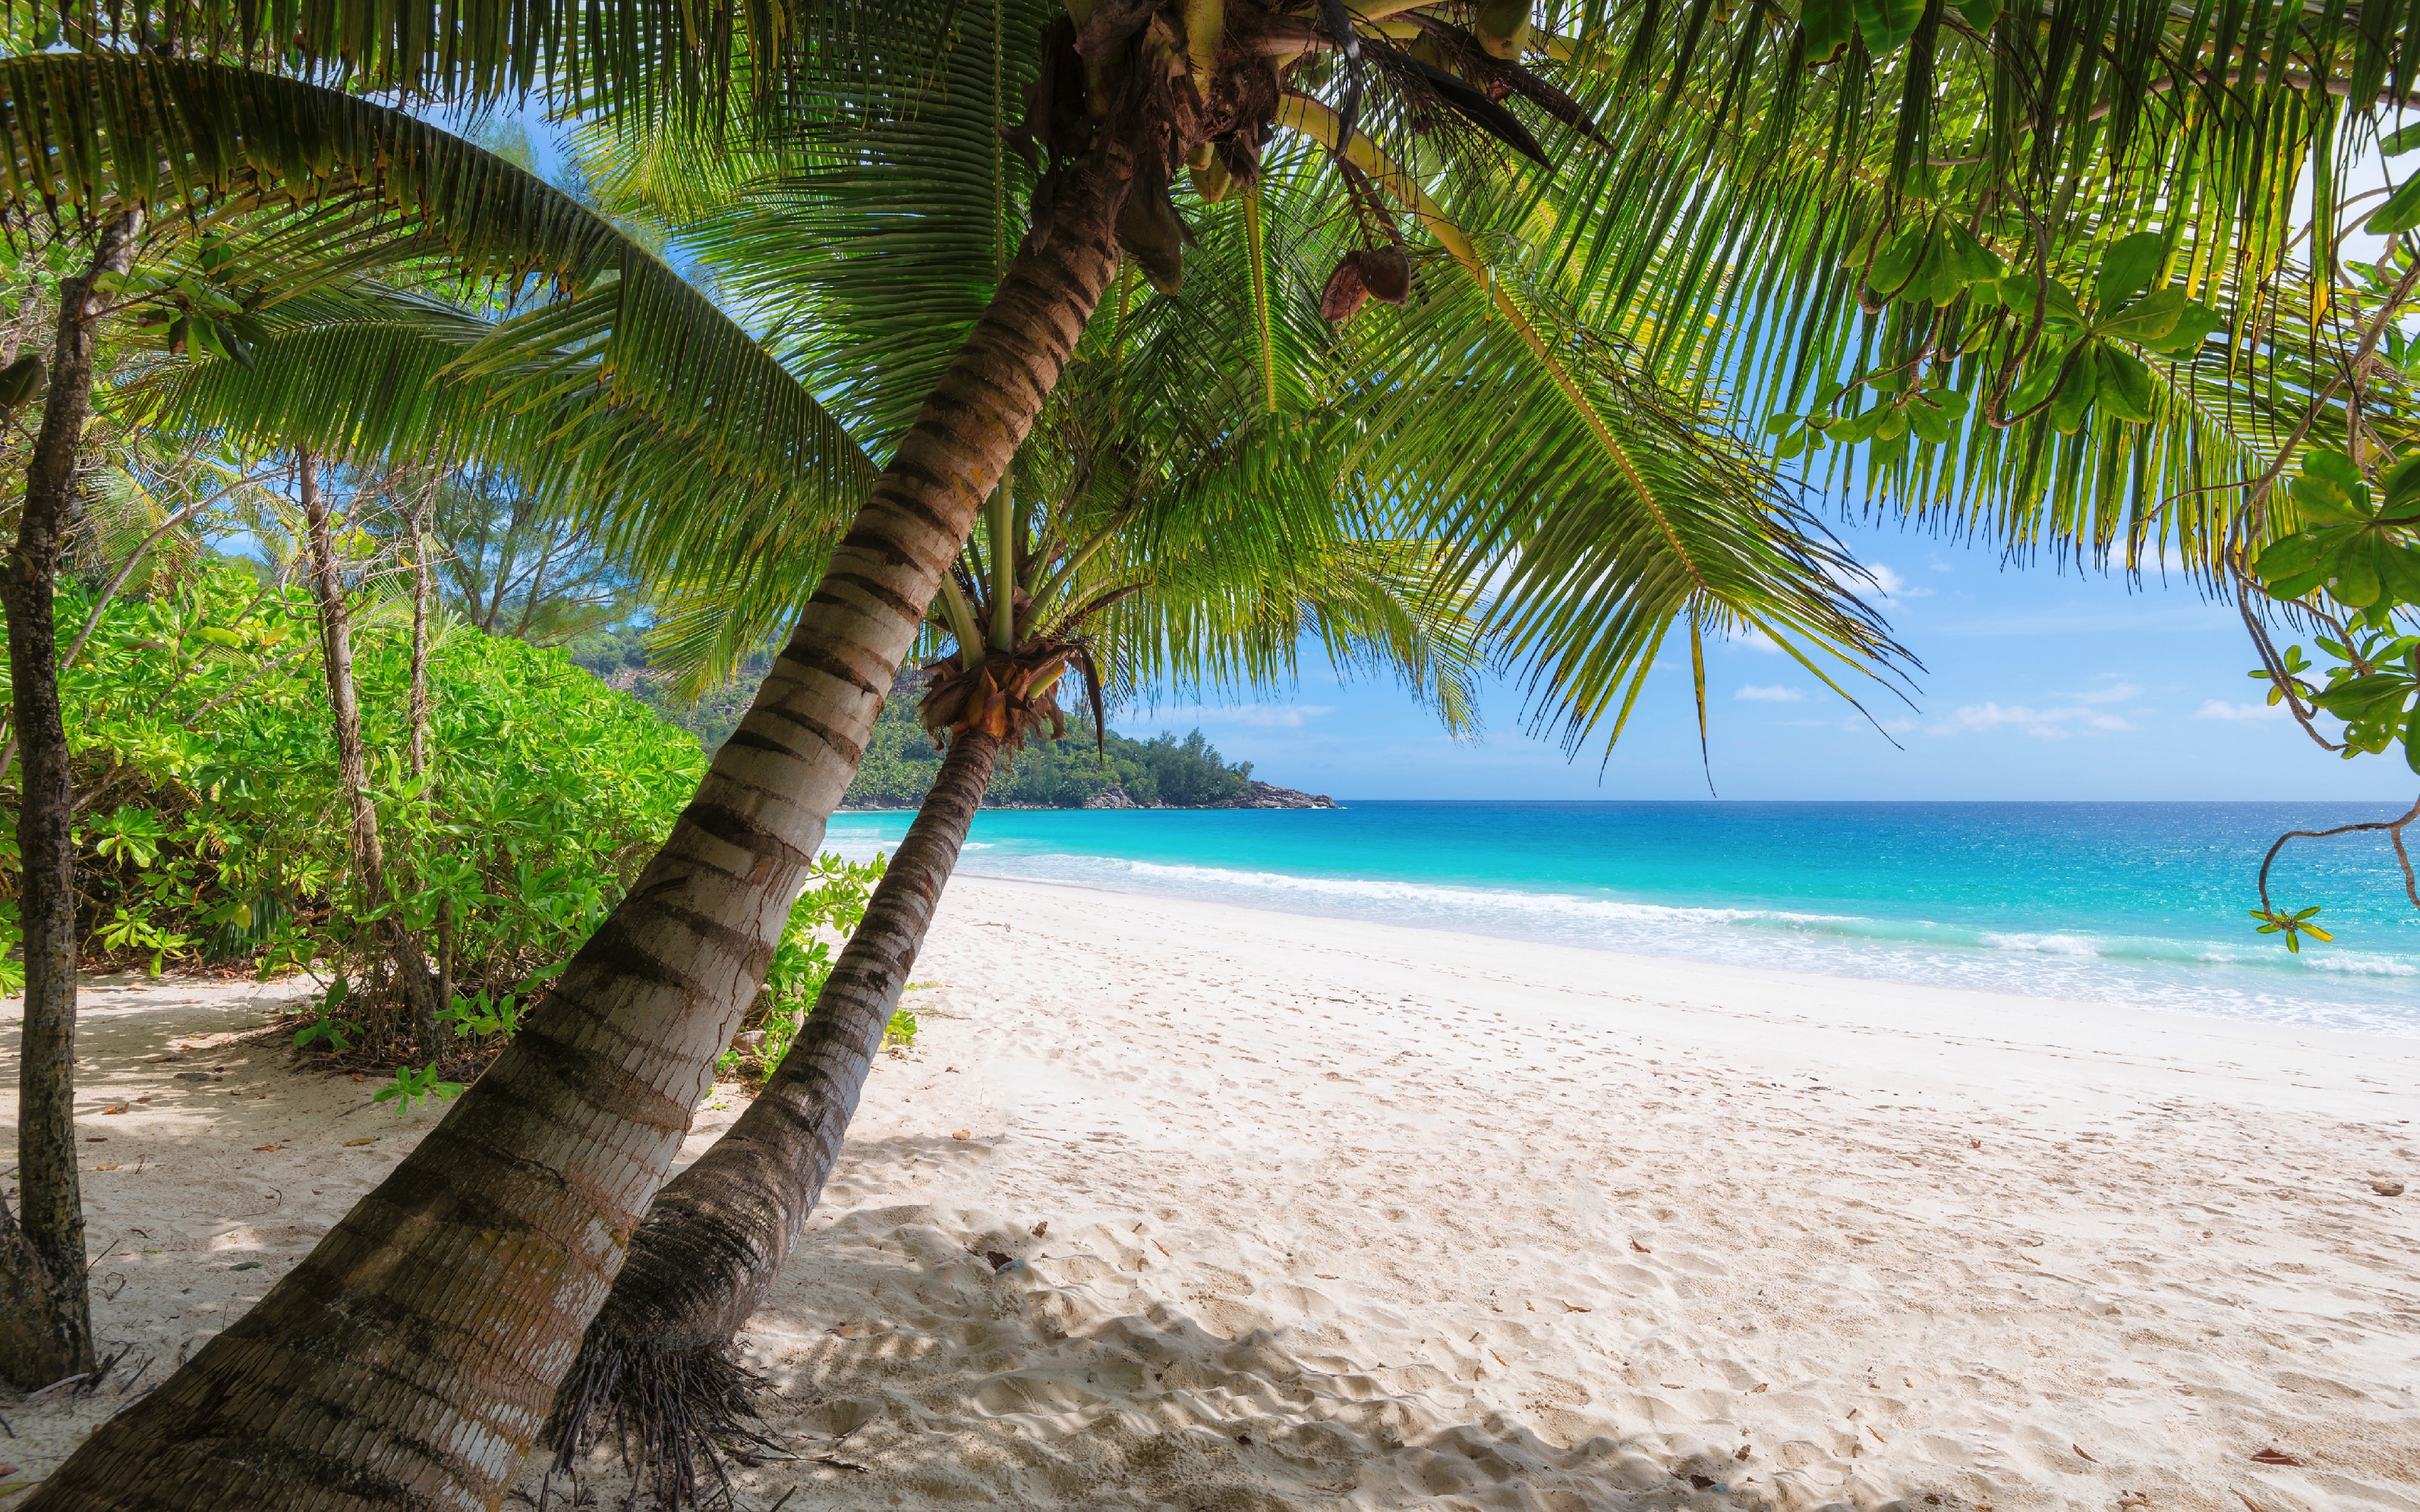 Download 3840x2400 Wallpaper Palm Trees, Tropical Beach ...